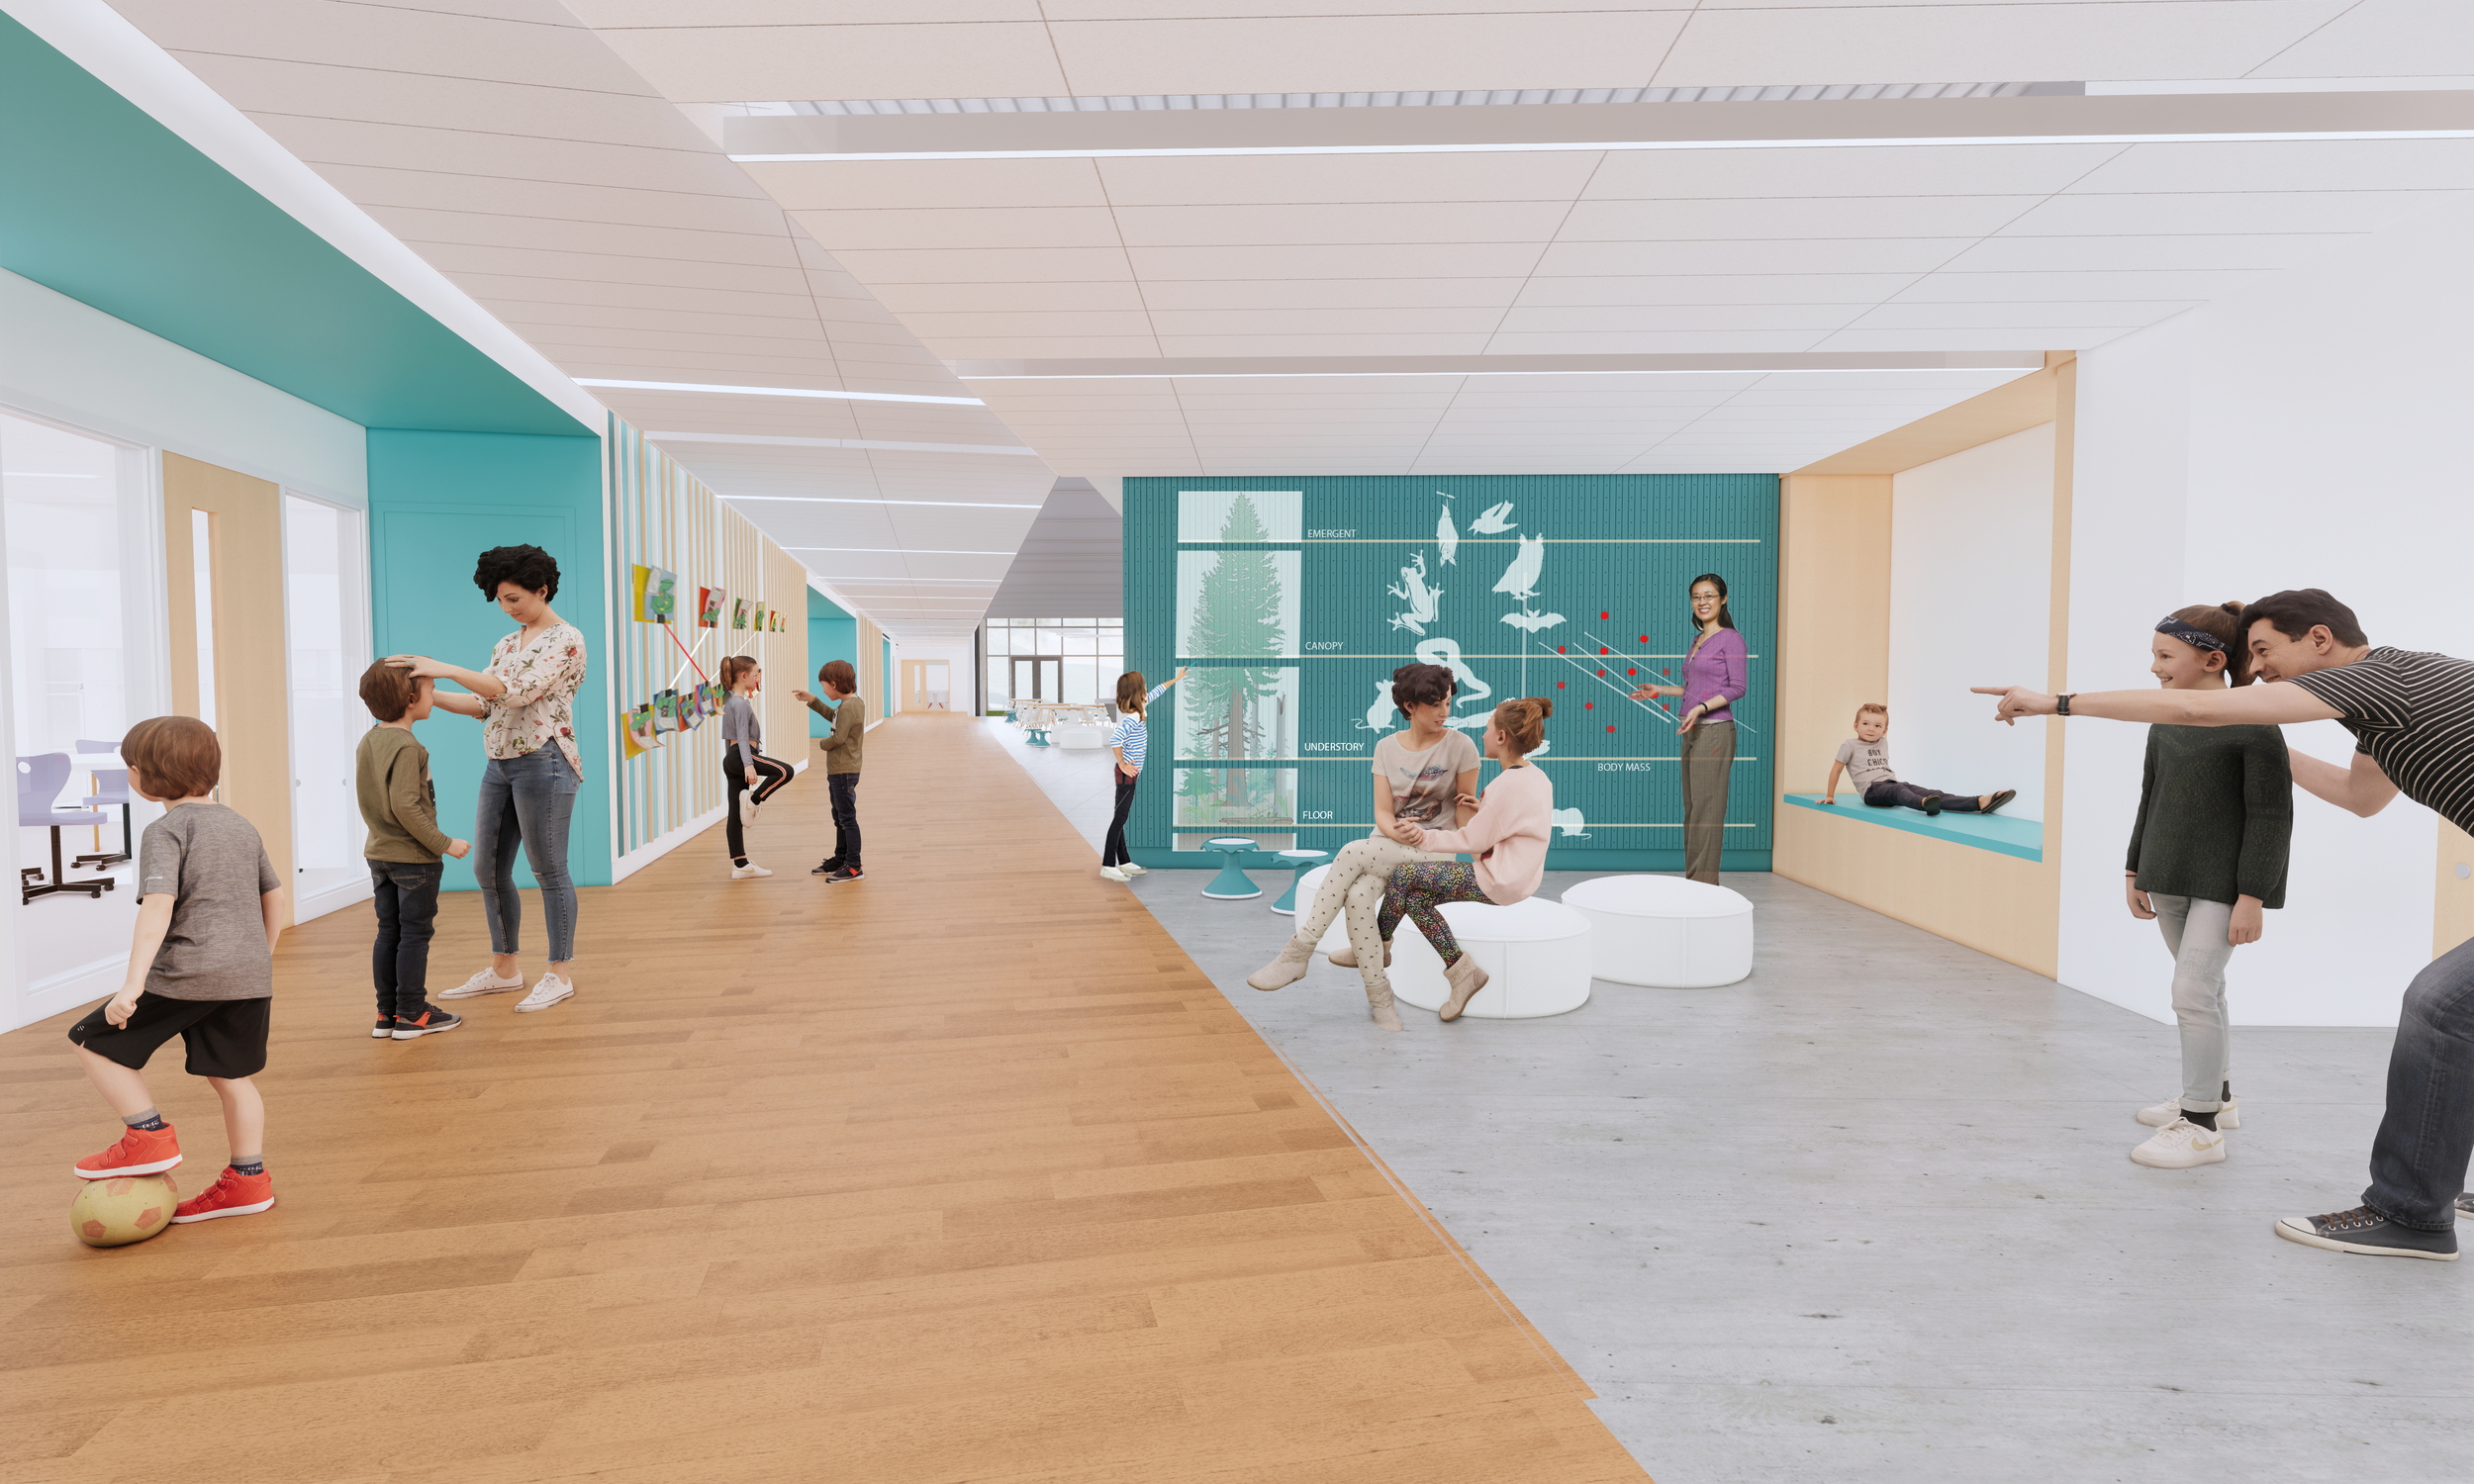 Rendering of a school interior where students, parents, and teachers engage with architectural features like a seating nook and a wall displaying an educational diagram